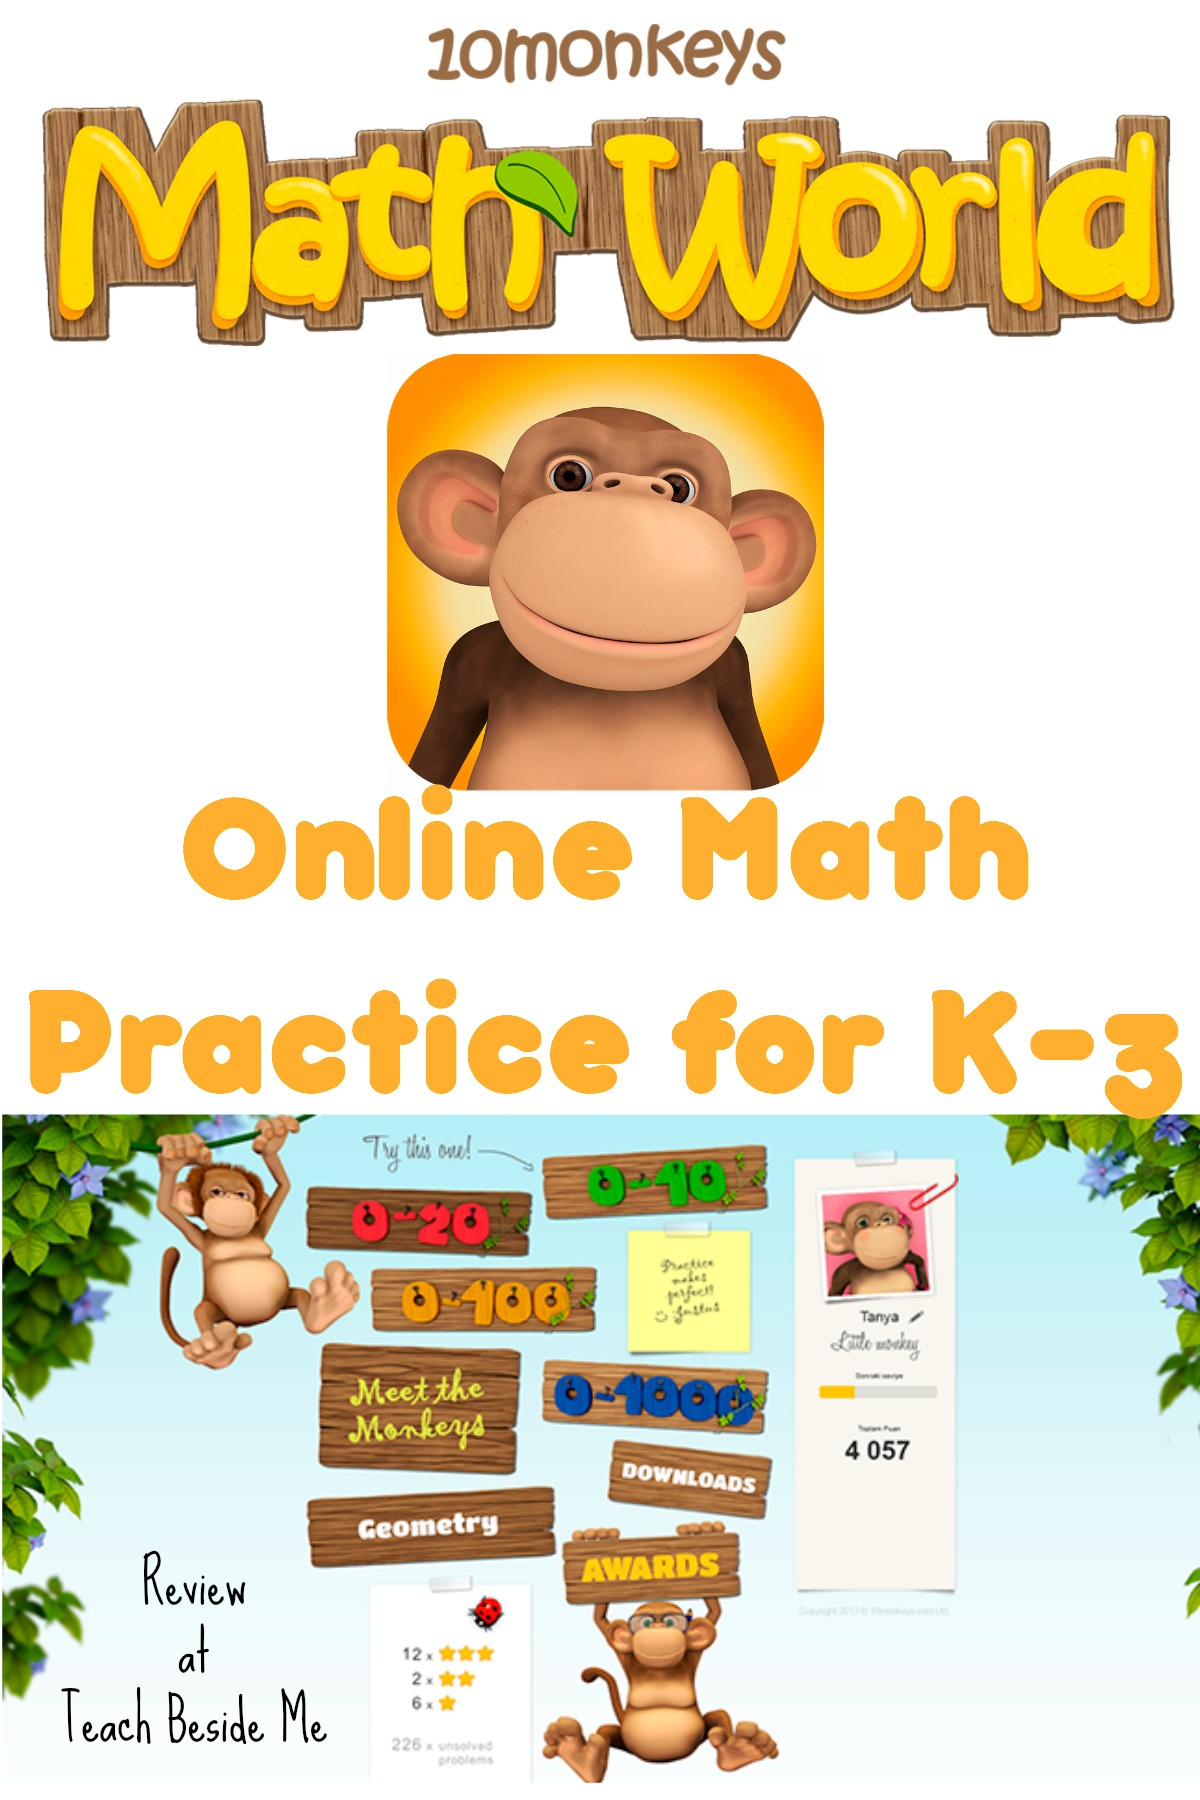 Online Math Practice with 10 Monkeys Math World